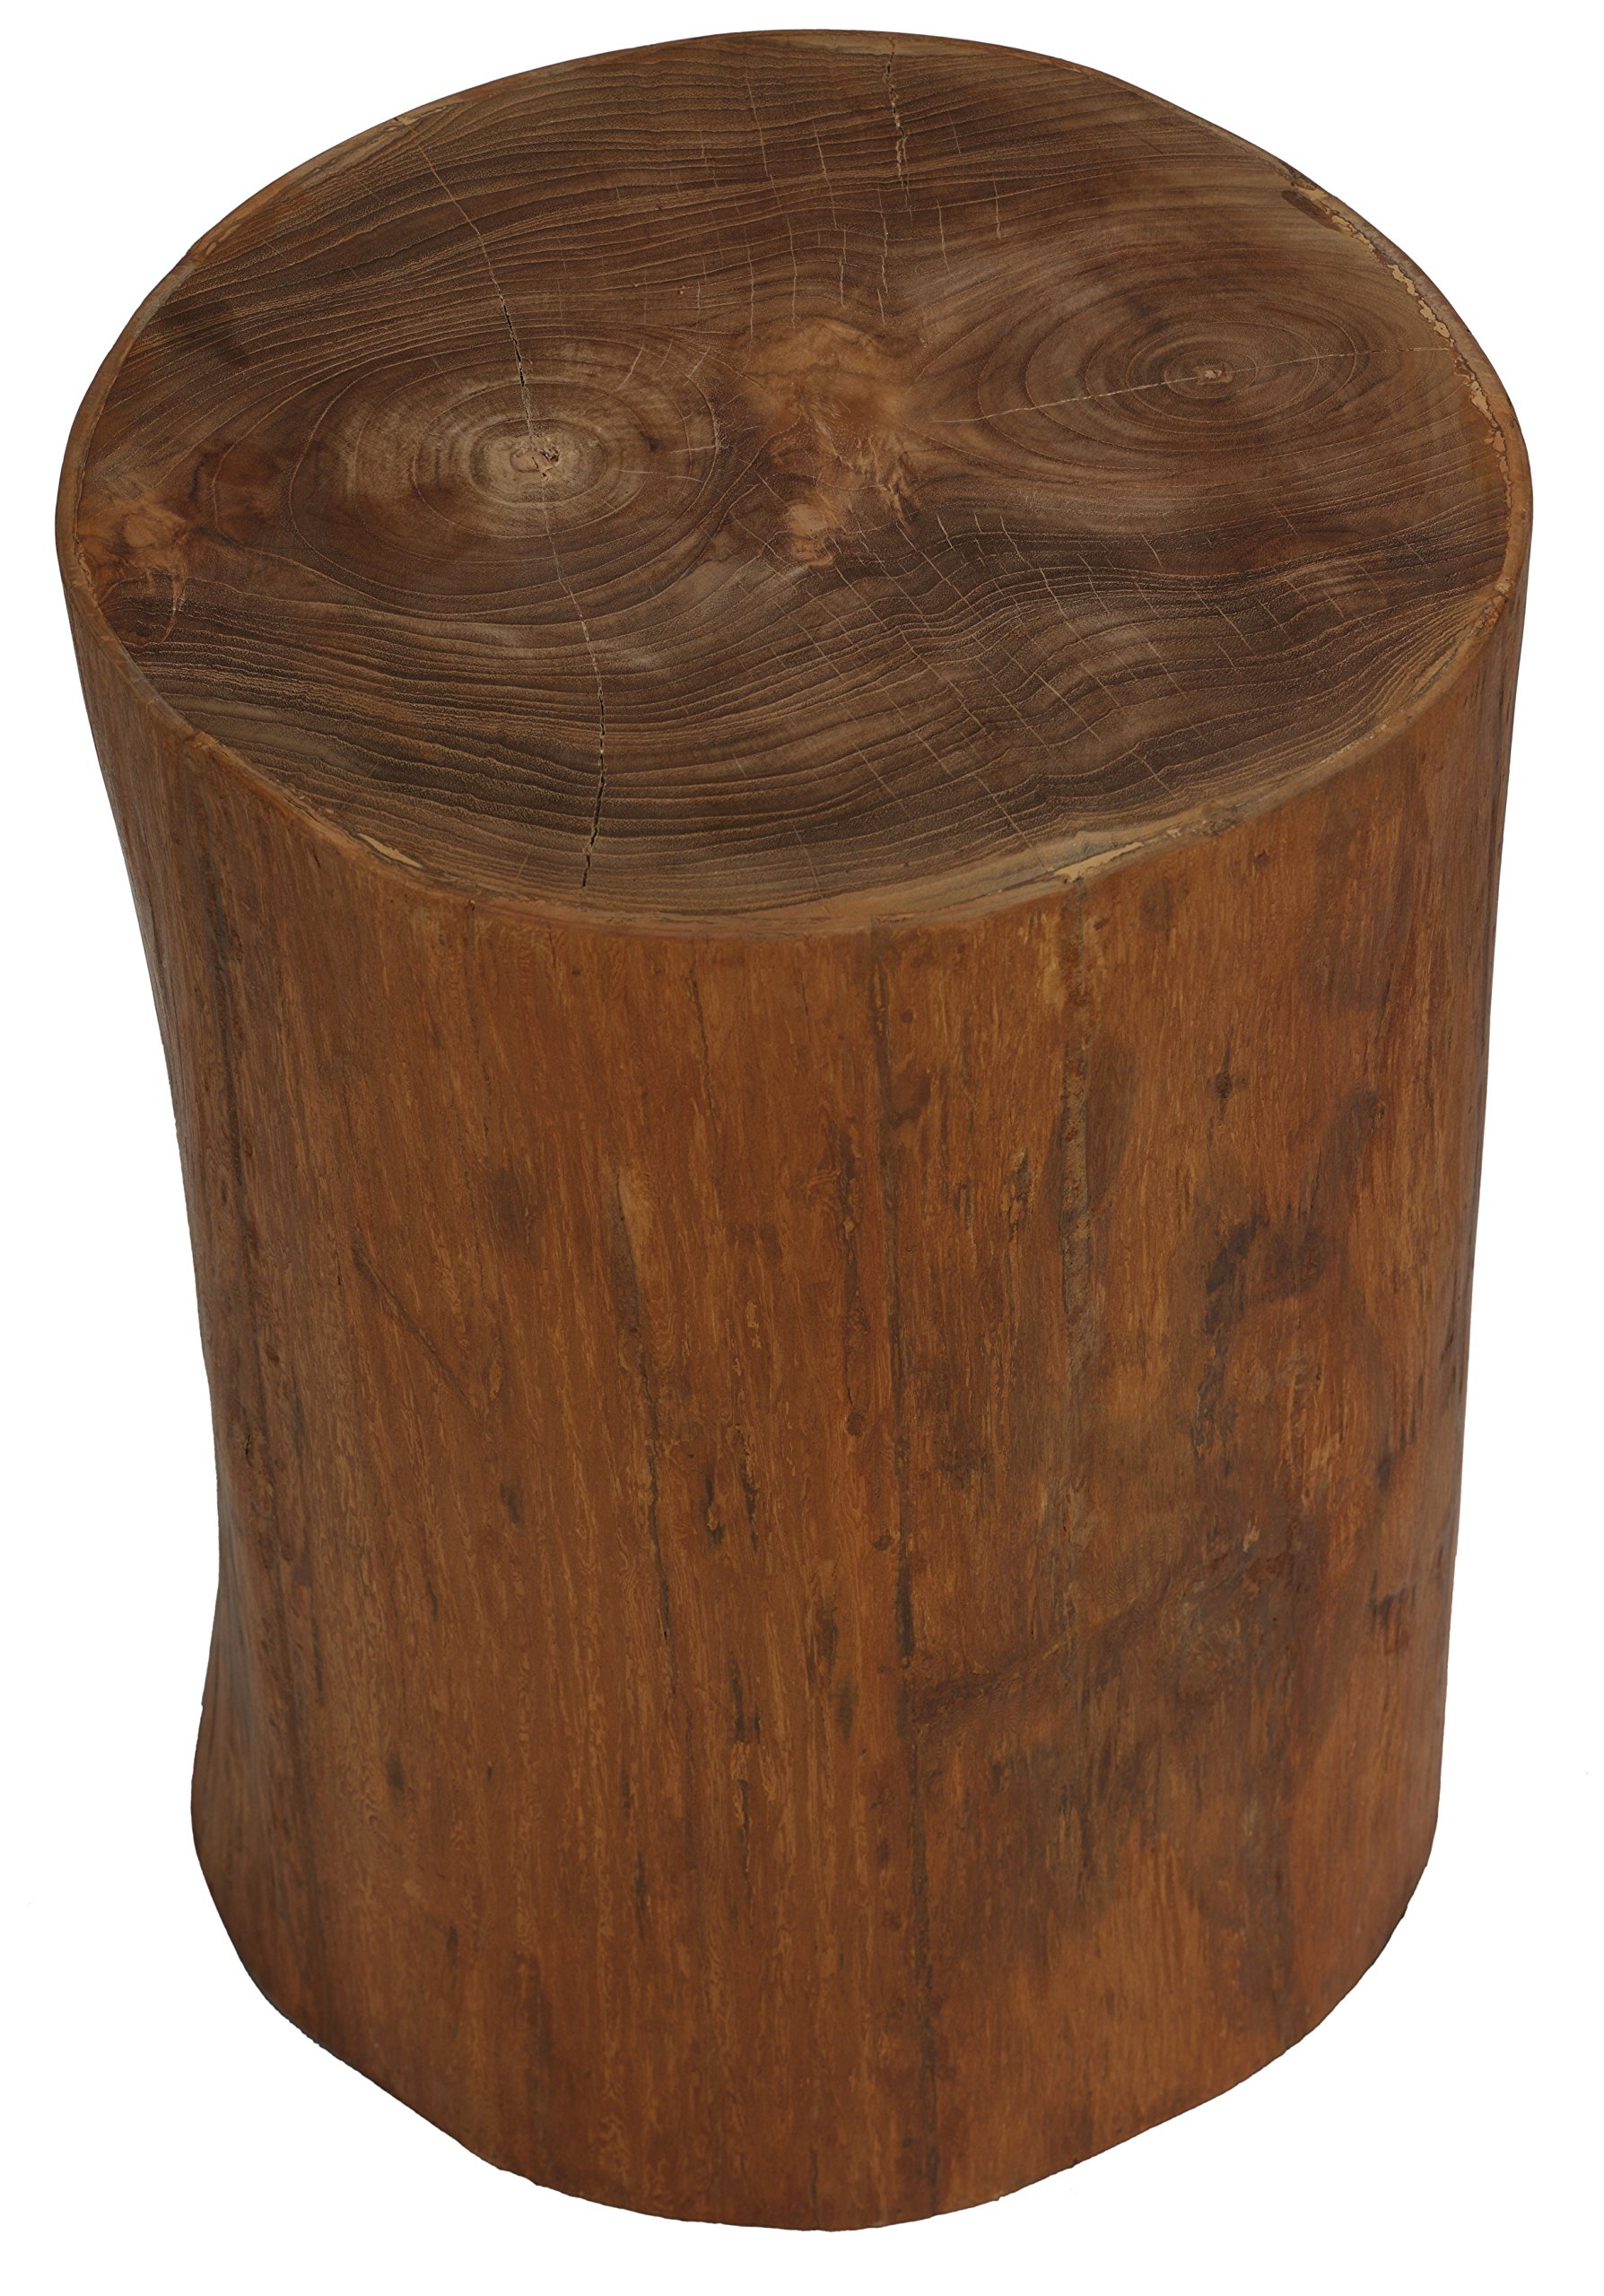 Bare Decor Adi Round Tree Stump End Table/Stool - Artisan end table Hollow insides make this lightweight yet durable Use as a table, decor, plant stand, or stool - living-room-furniture, living-room, end-tables - 91rqoAEbx0L -